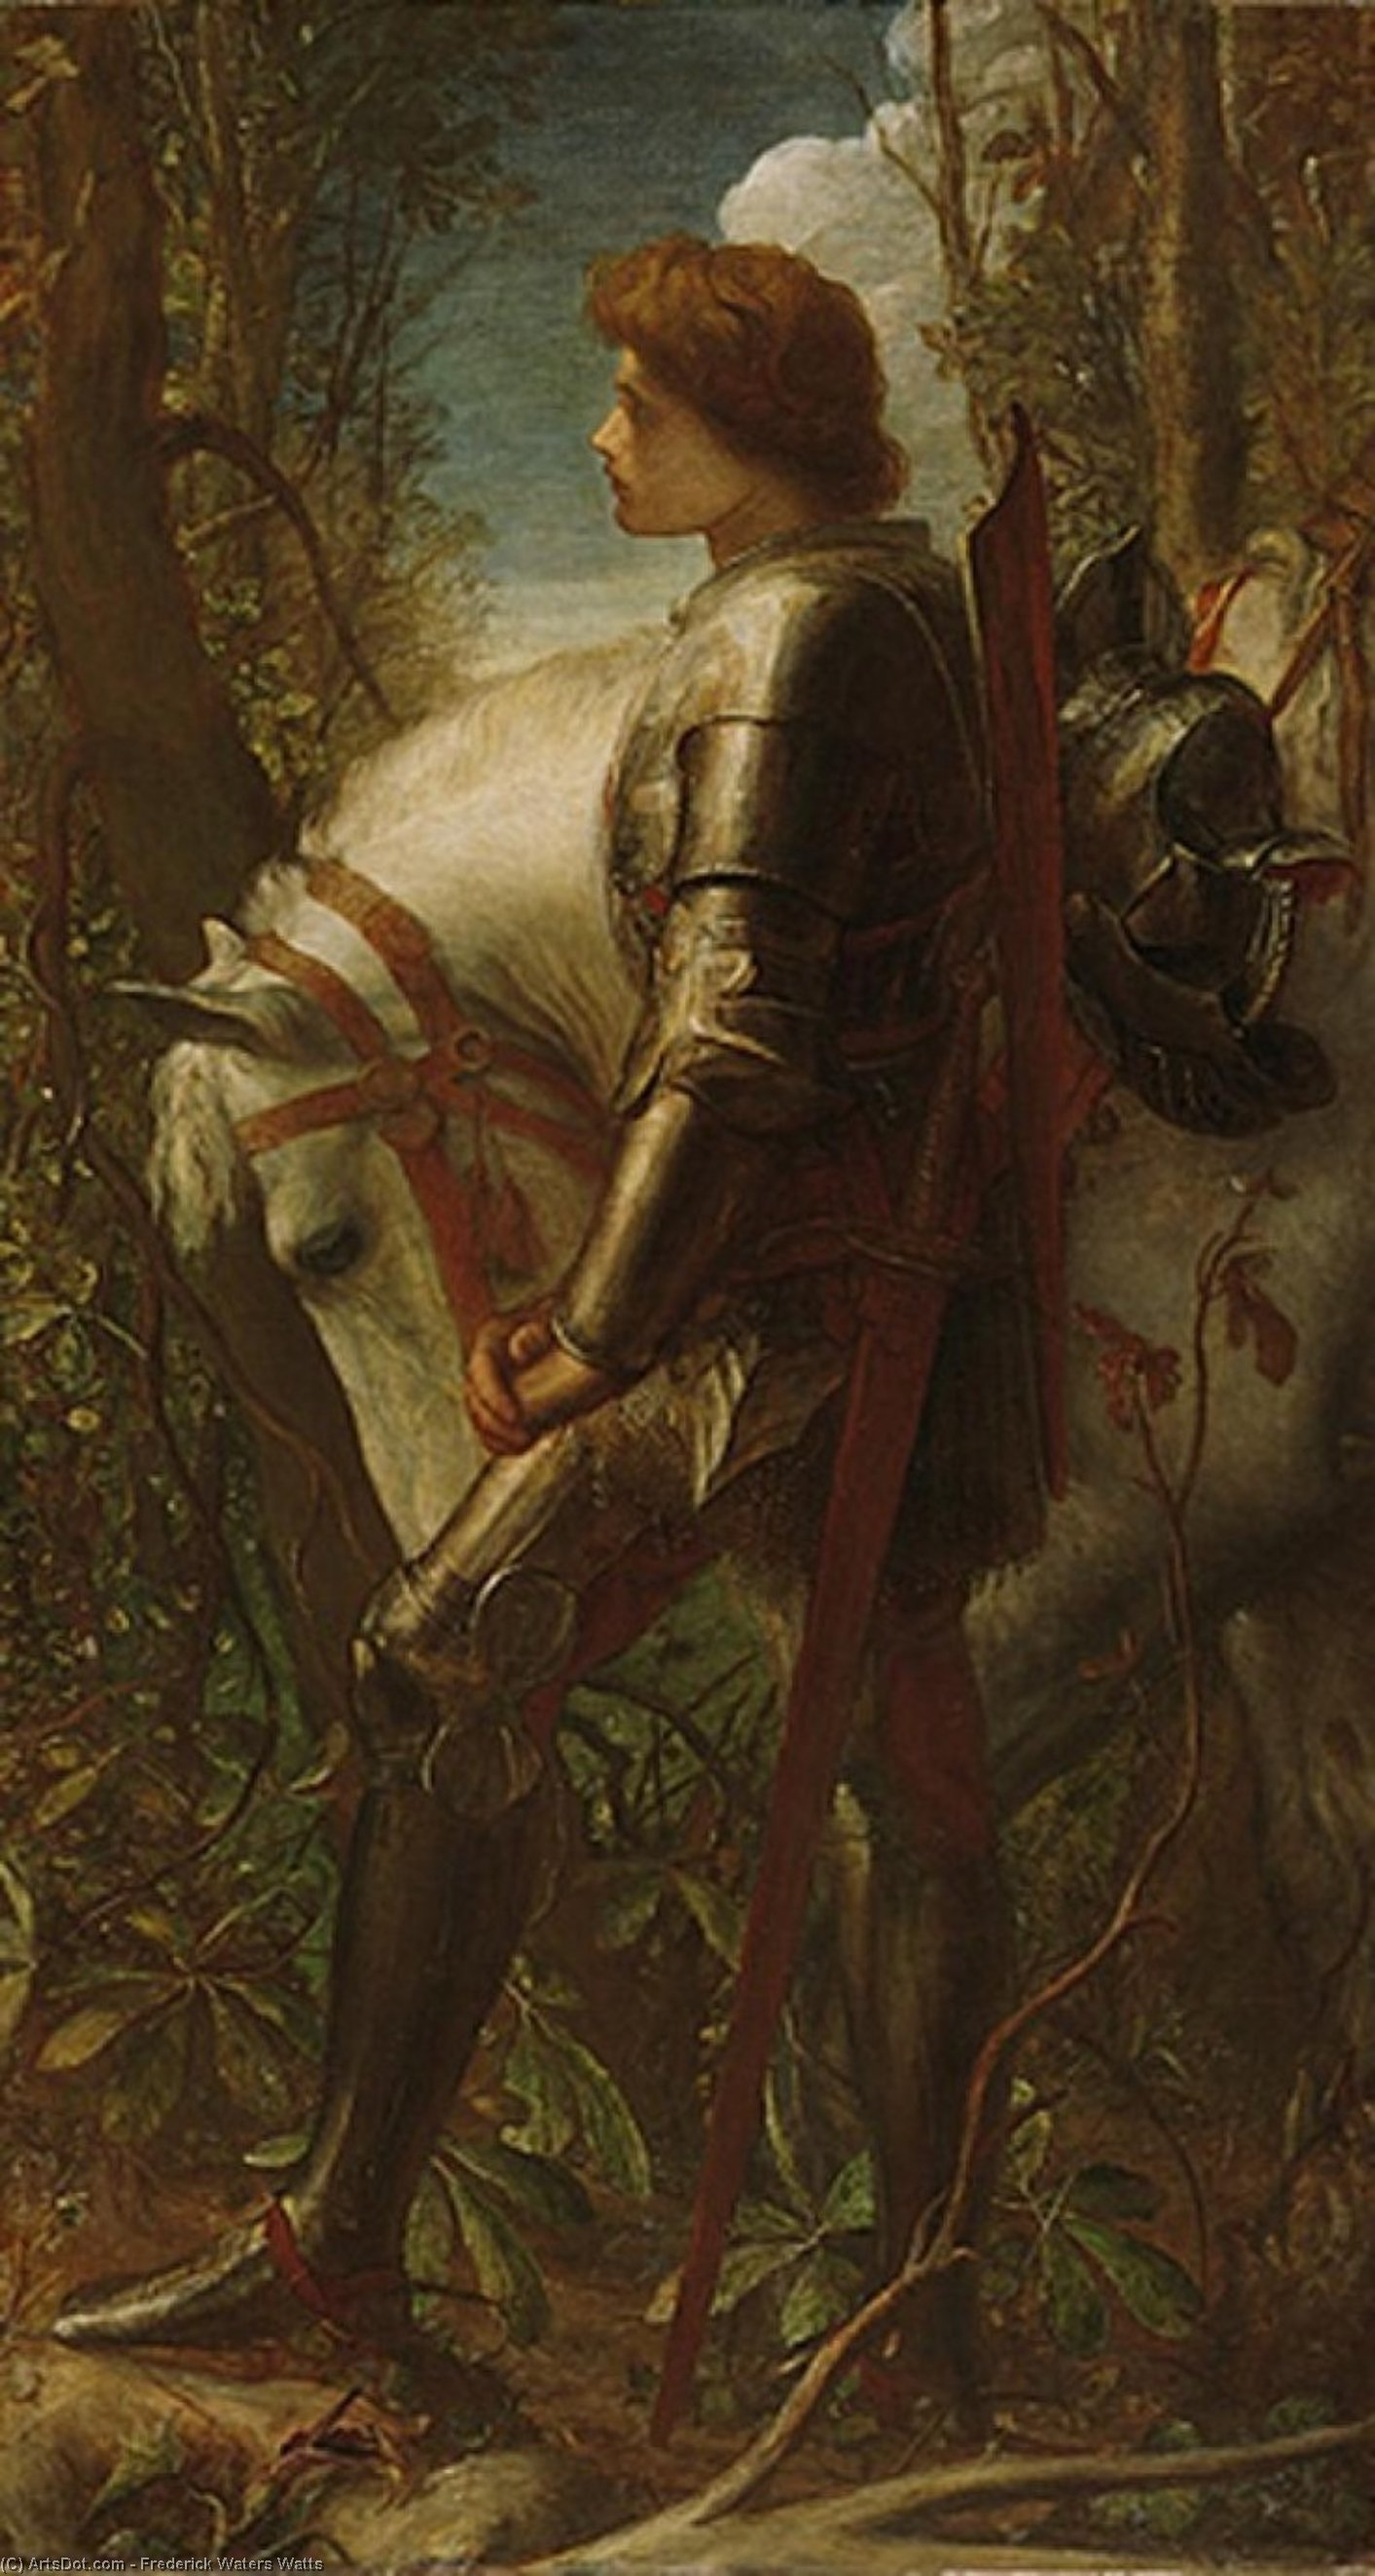 sir galahad, 1862 von Frederick Waters Watts (1800-1870, United Kingdom)